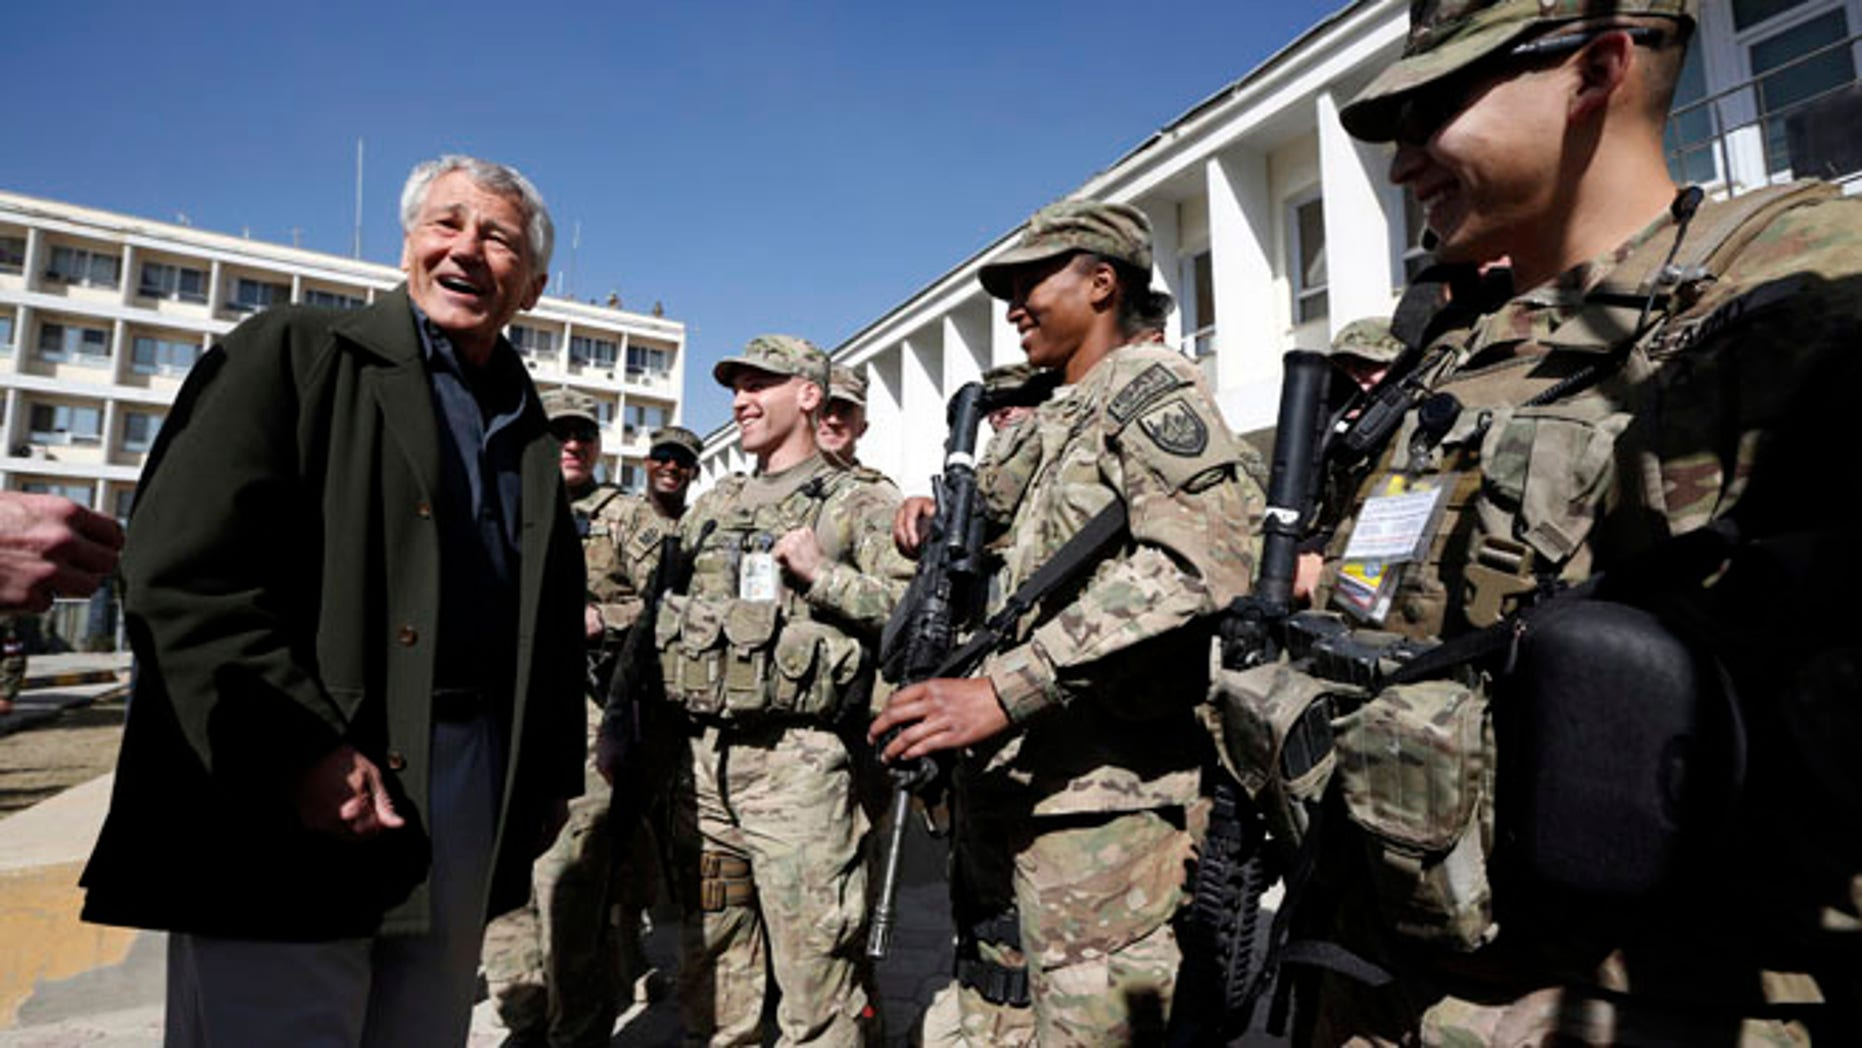 March 10, 2013: U.S. Defense Secretary Chuck Hagel, left, meets with U.S. Army troops during his visit to the Kabul Military Training Center in Kabul, Afghanistan. Hagel said he believes U.S. officials will be able to work things out with Afghan leaders who have ordered special operations forces out of Wardak province, even as commandos face a Monday deadline to leave.